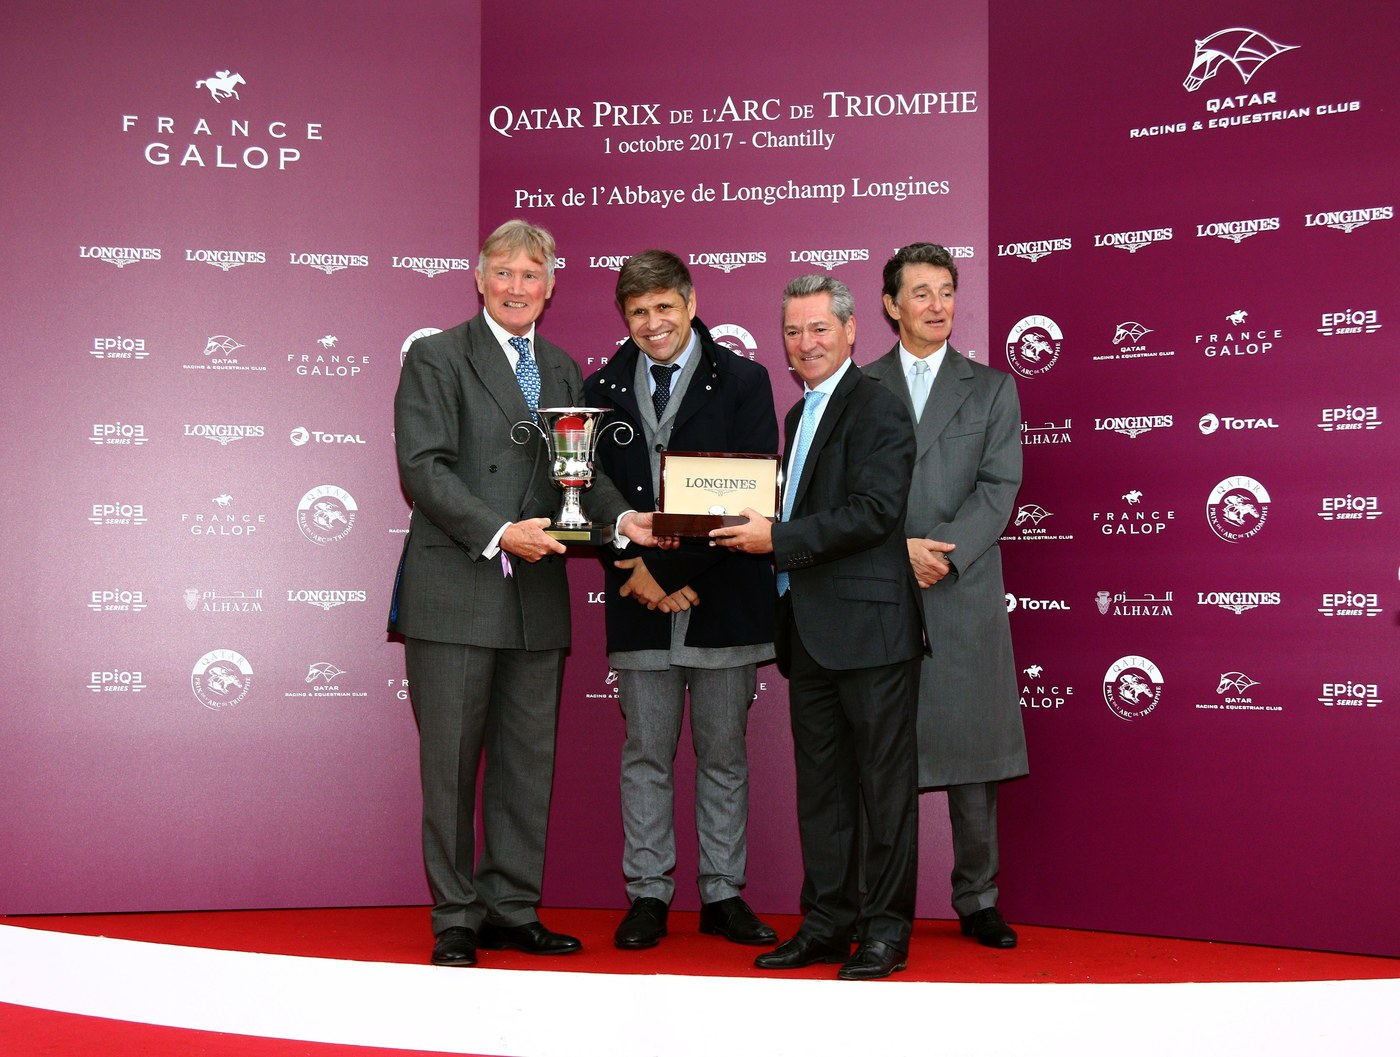 Longines Flat Racing Event: Longines' precision served the prestigious Qatar Prix de l'Arc de Triomphe 6